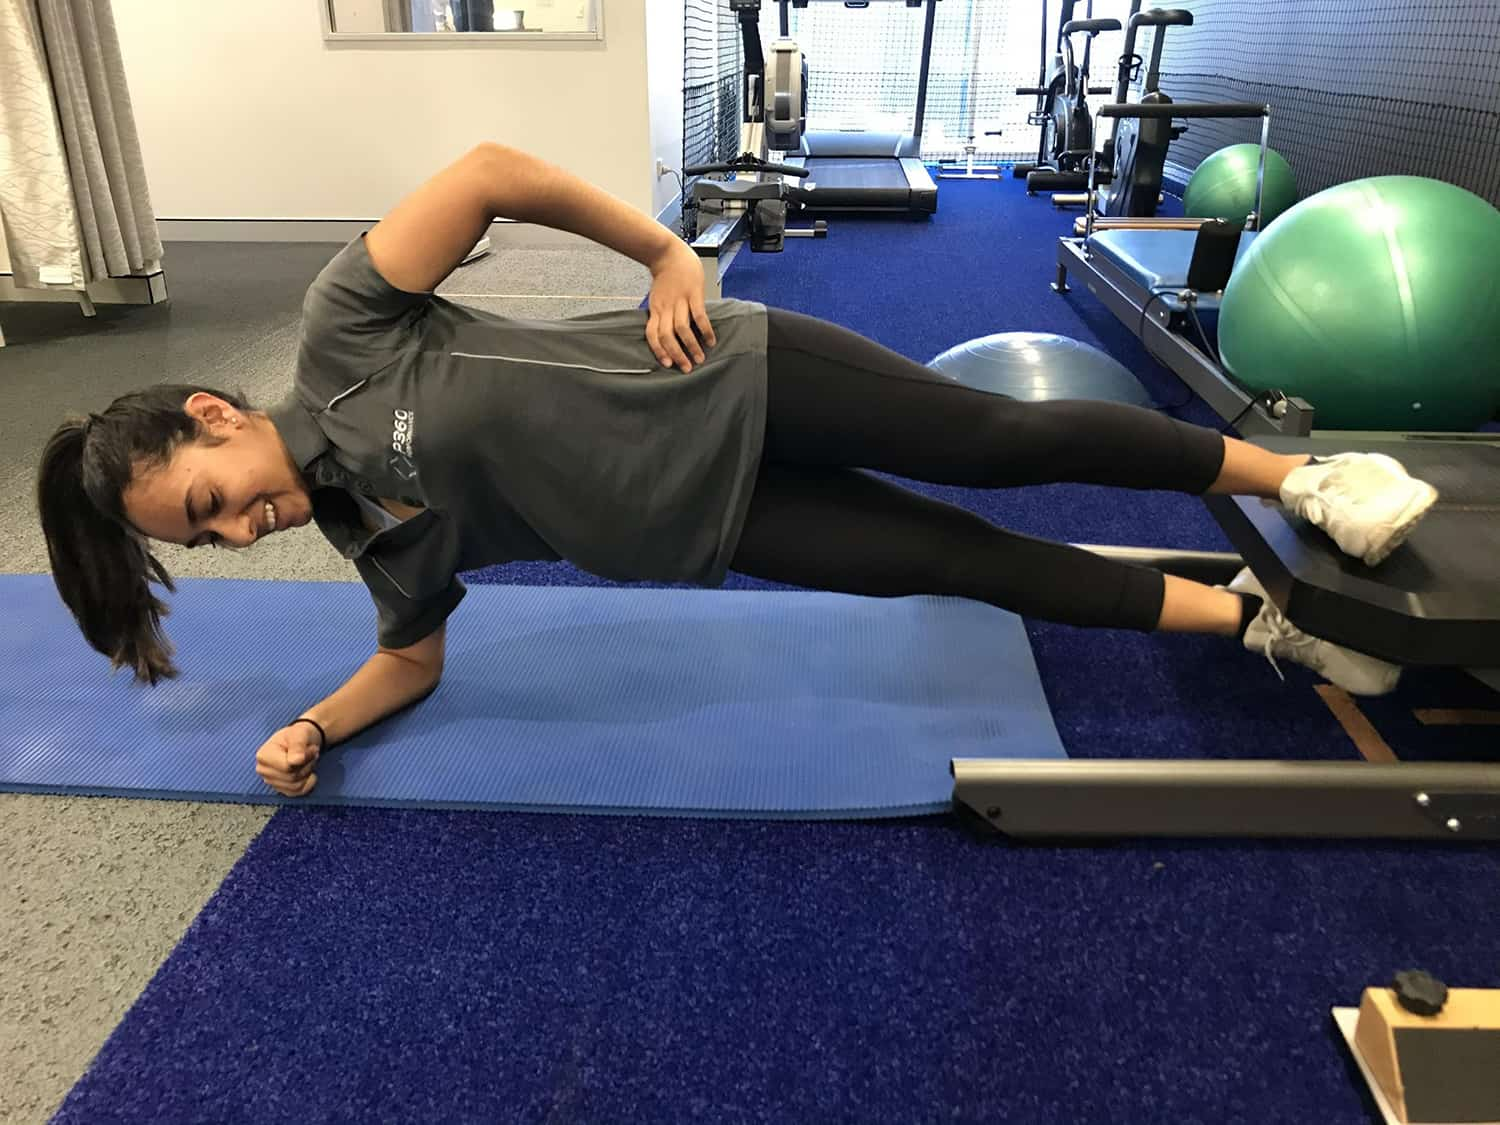 Copenhagens Exercise For Strengthening Adductor Muscles